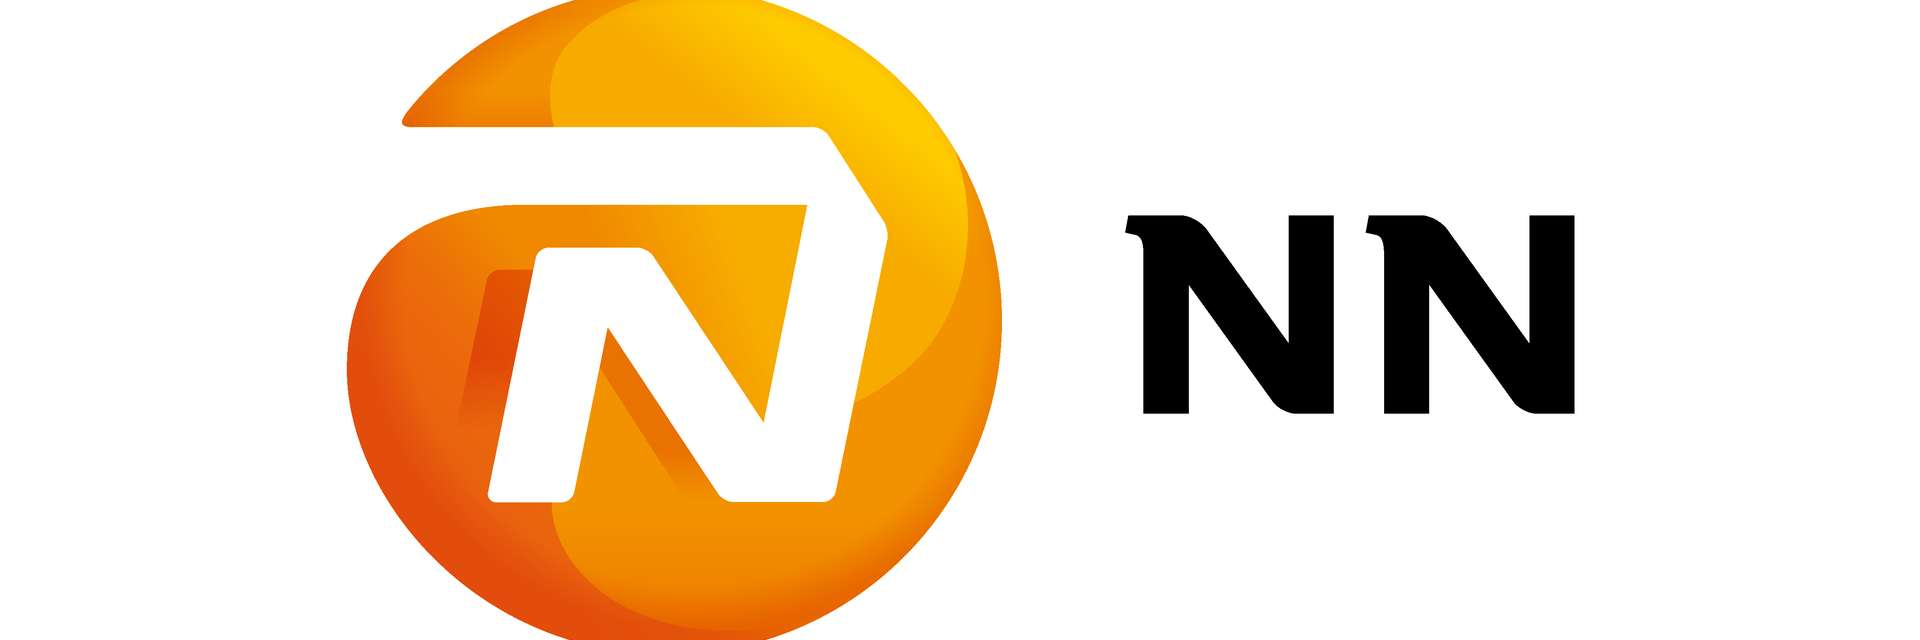 NN Group stapt uit teerzandolie